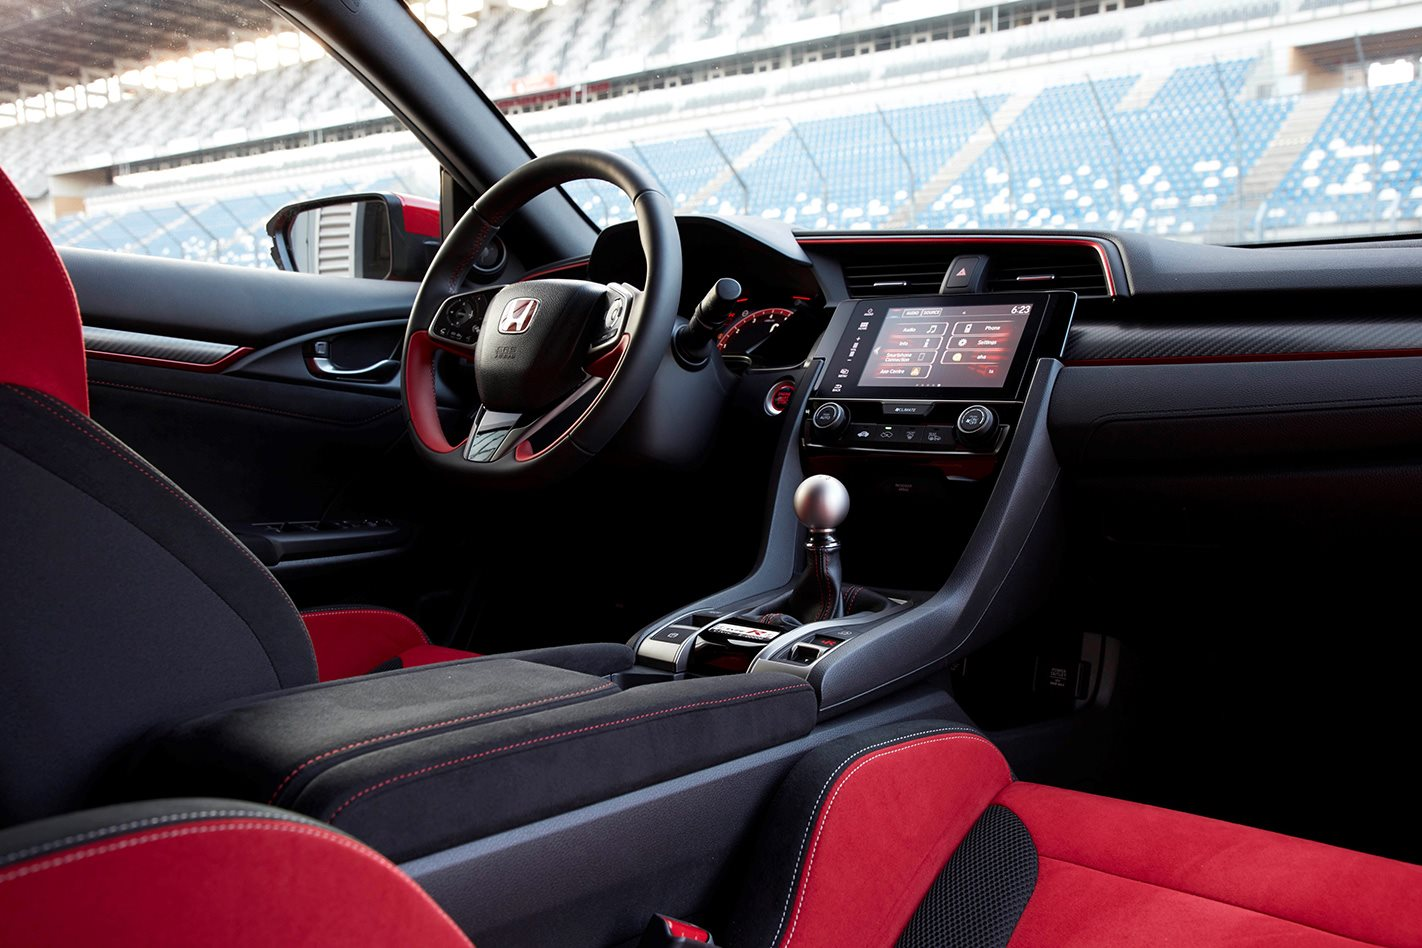 2017-Honda-Civic-Type-R-interior.jpg